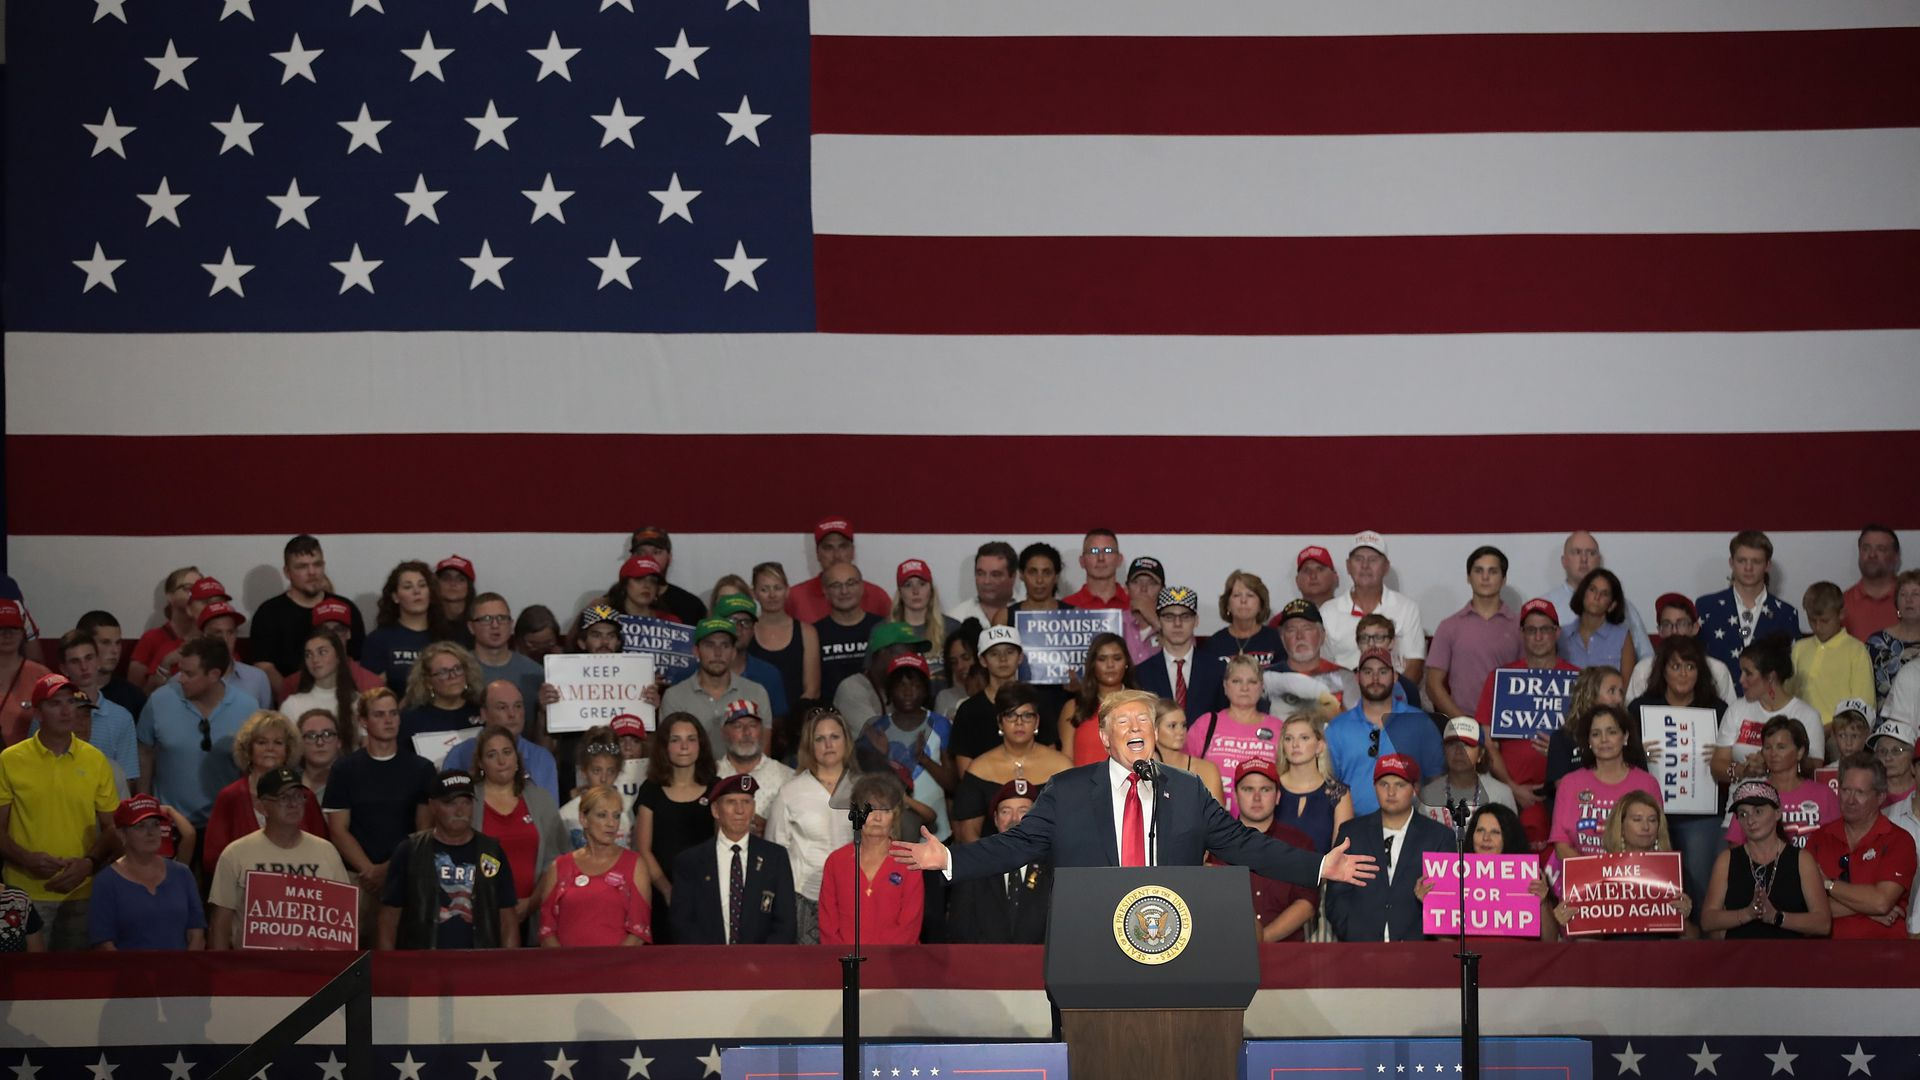 President Trump speaking in front of a crowd and an American flag backdrop at a rally.